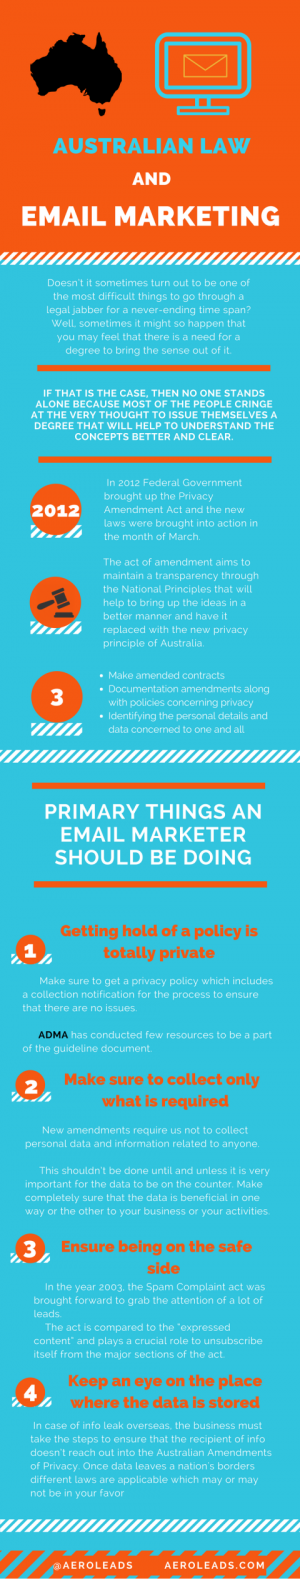 Australian Law of Email Marketing